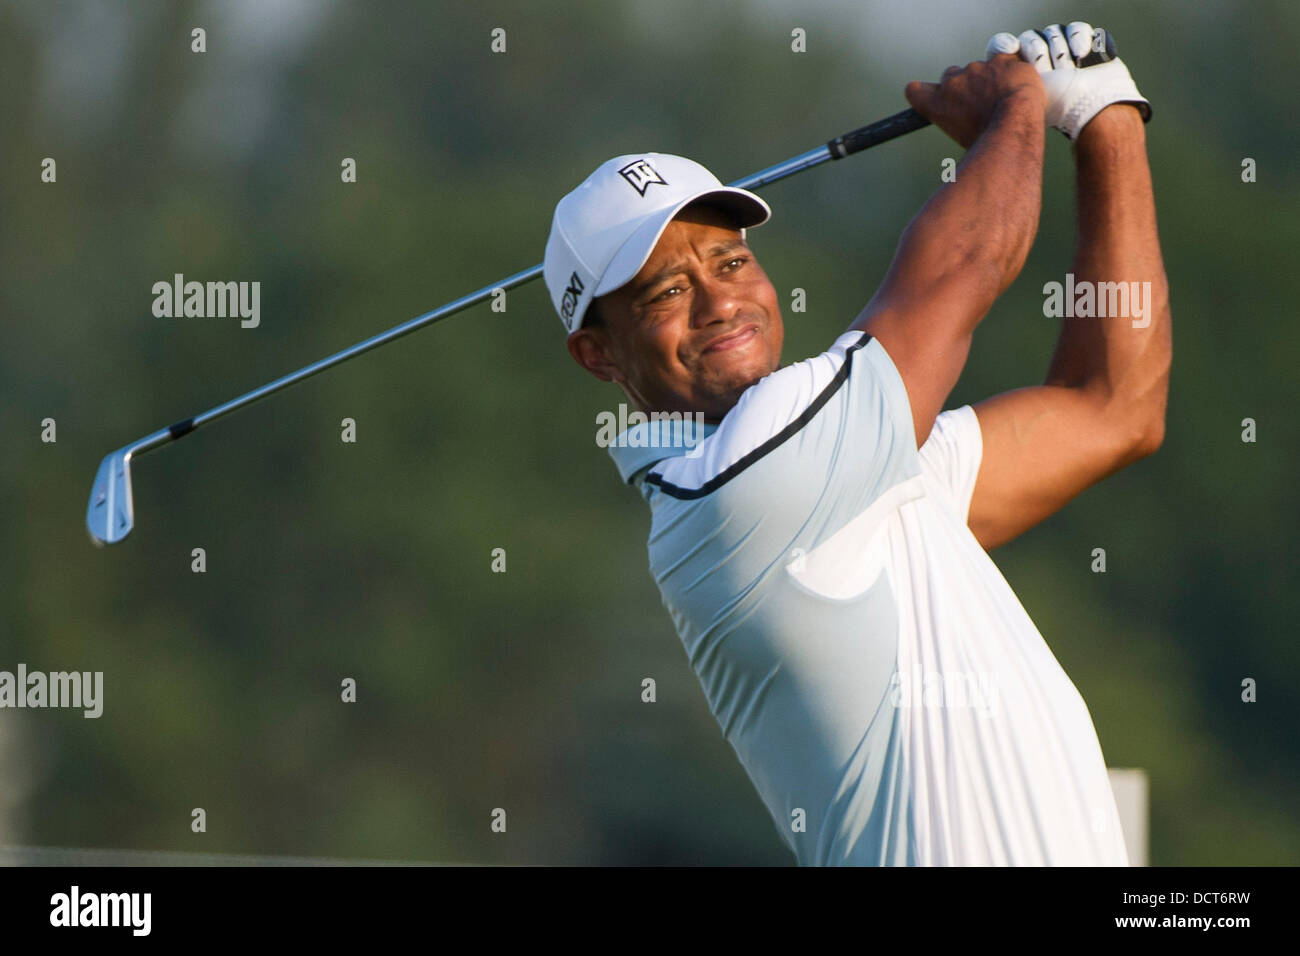 Jersey City, New Jersey, USA. 21st Aug, 2013. August 21, 2013: Tiger Woods (USA) hits off a tee in the early morning - Stock Image